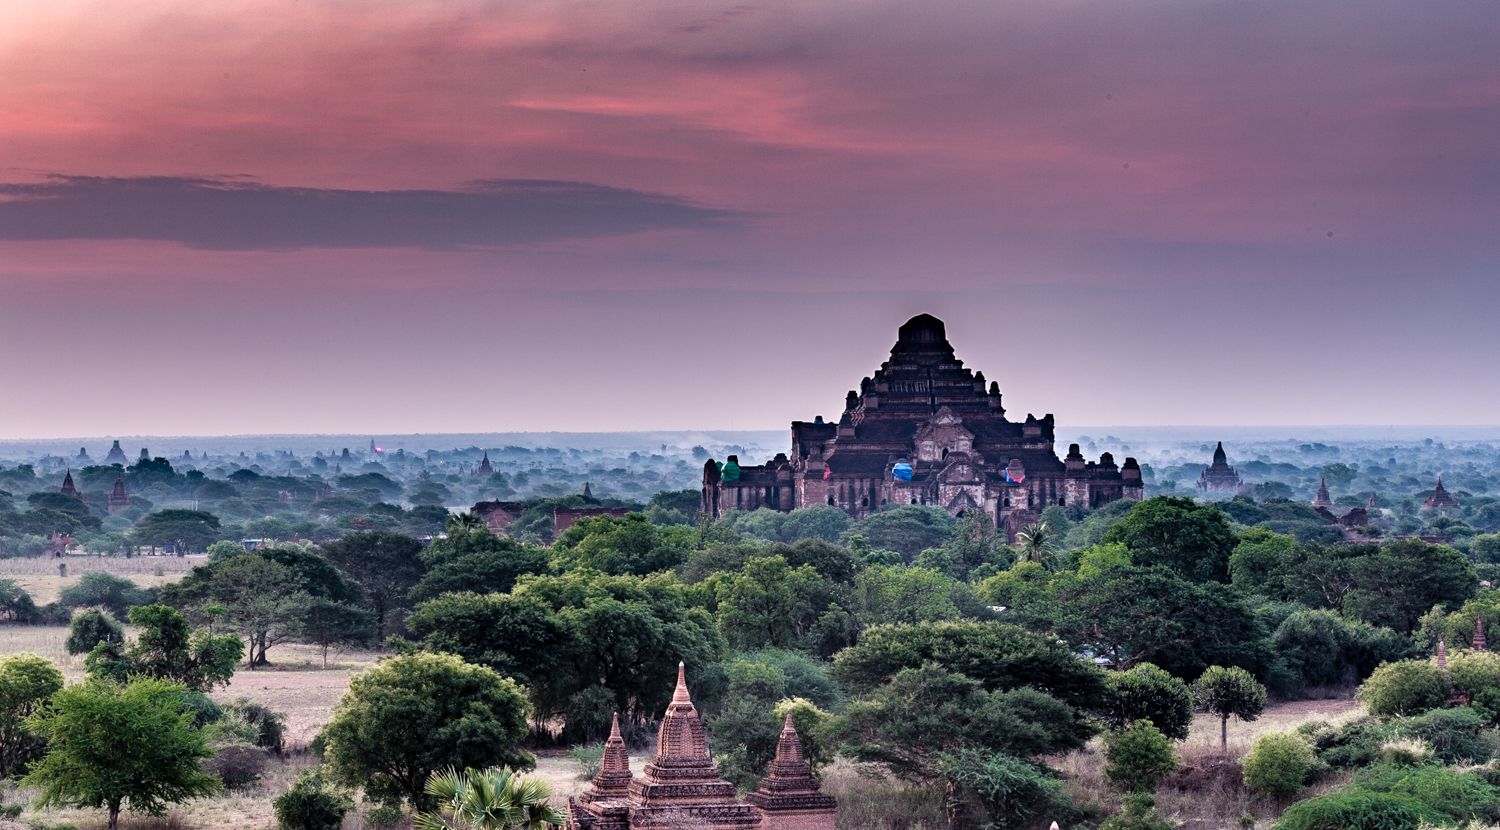 The Bagan Archaeological Zone consists of thousands of temple ruins.